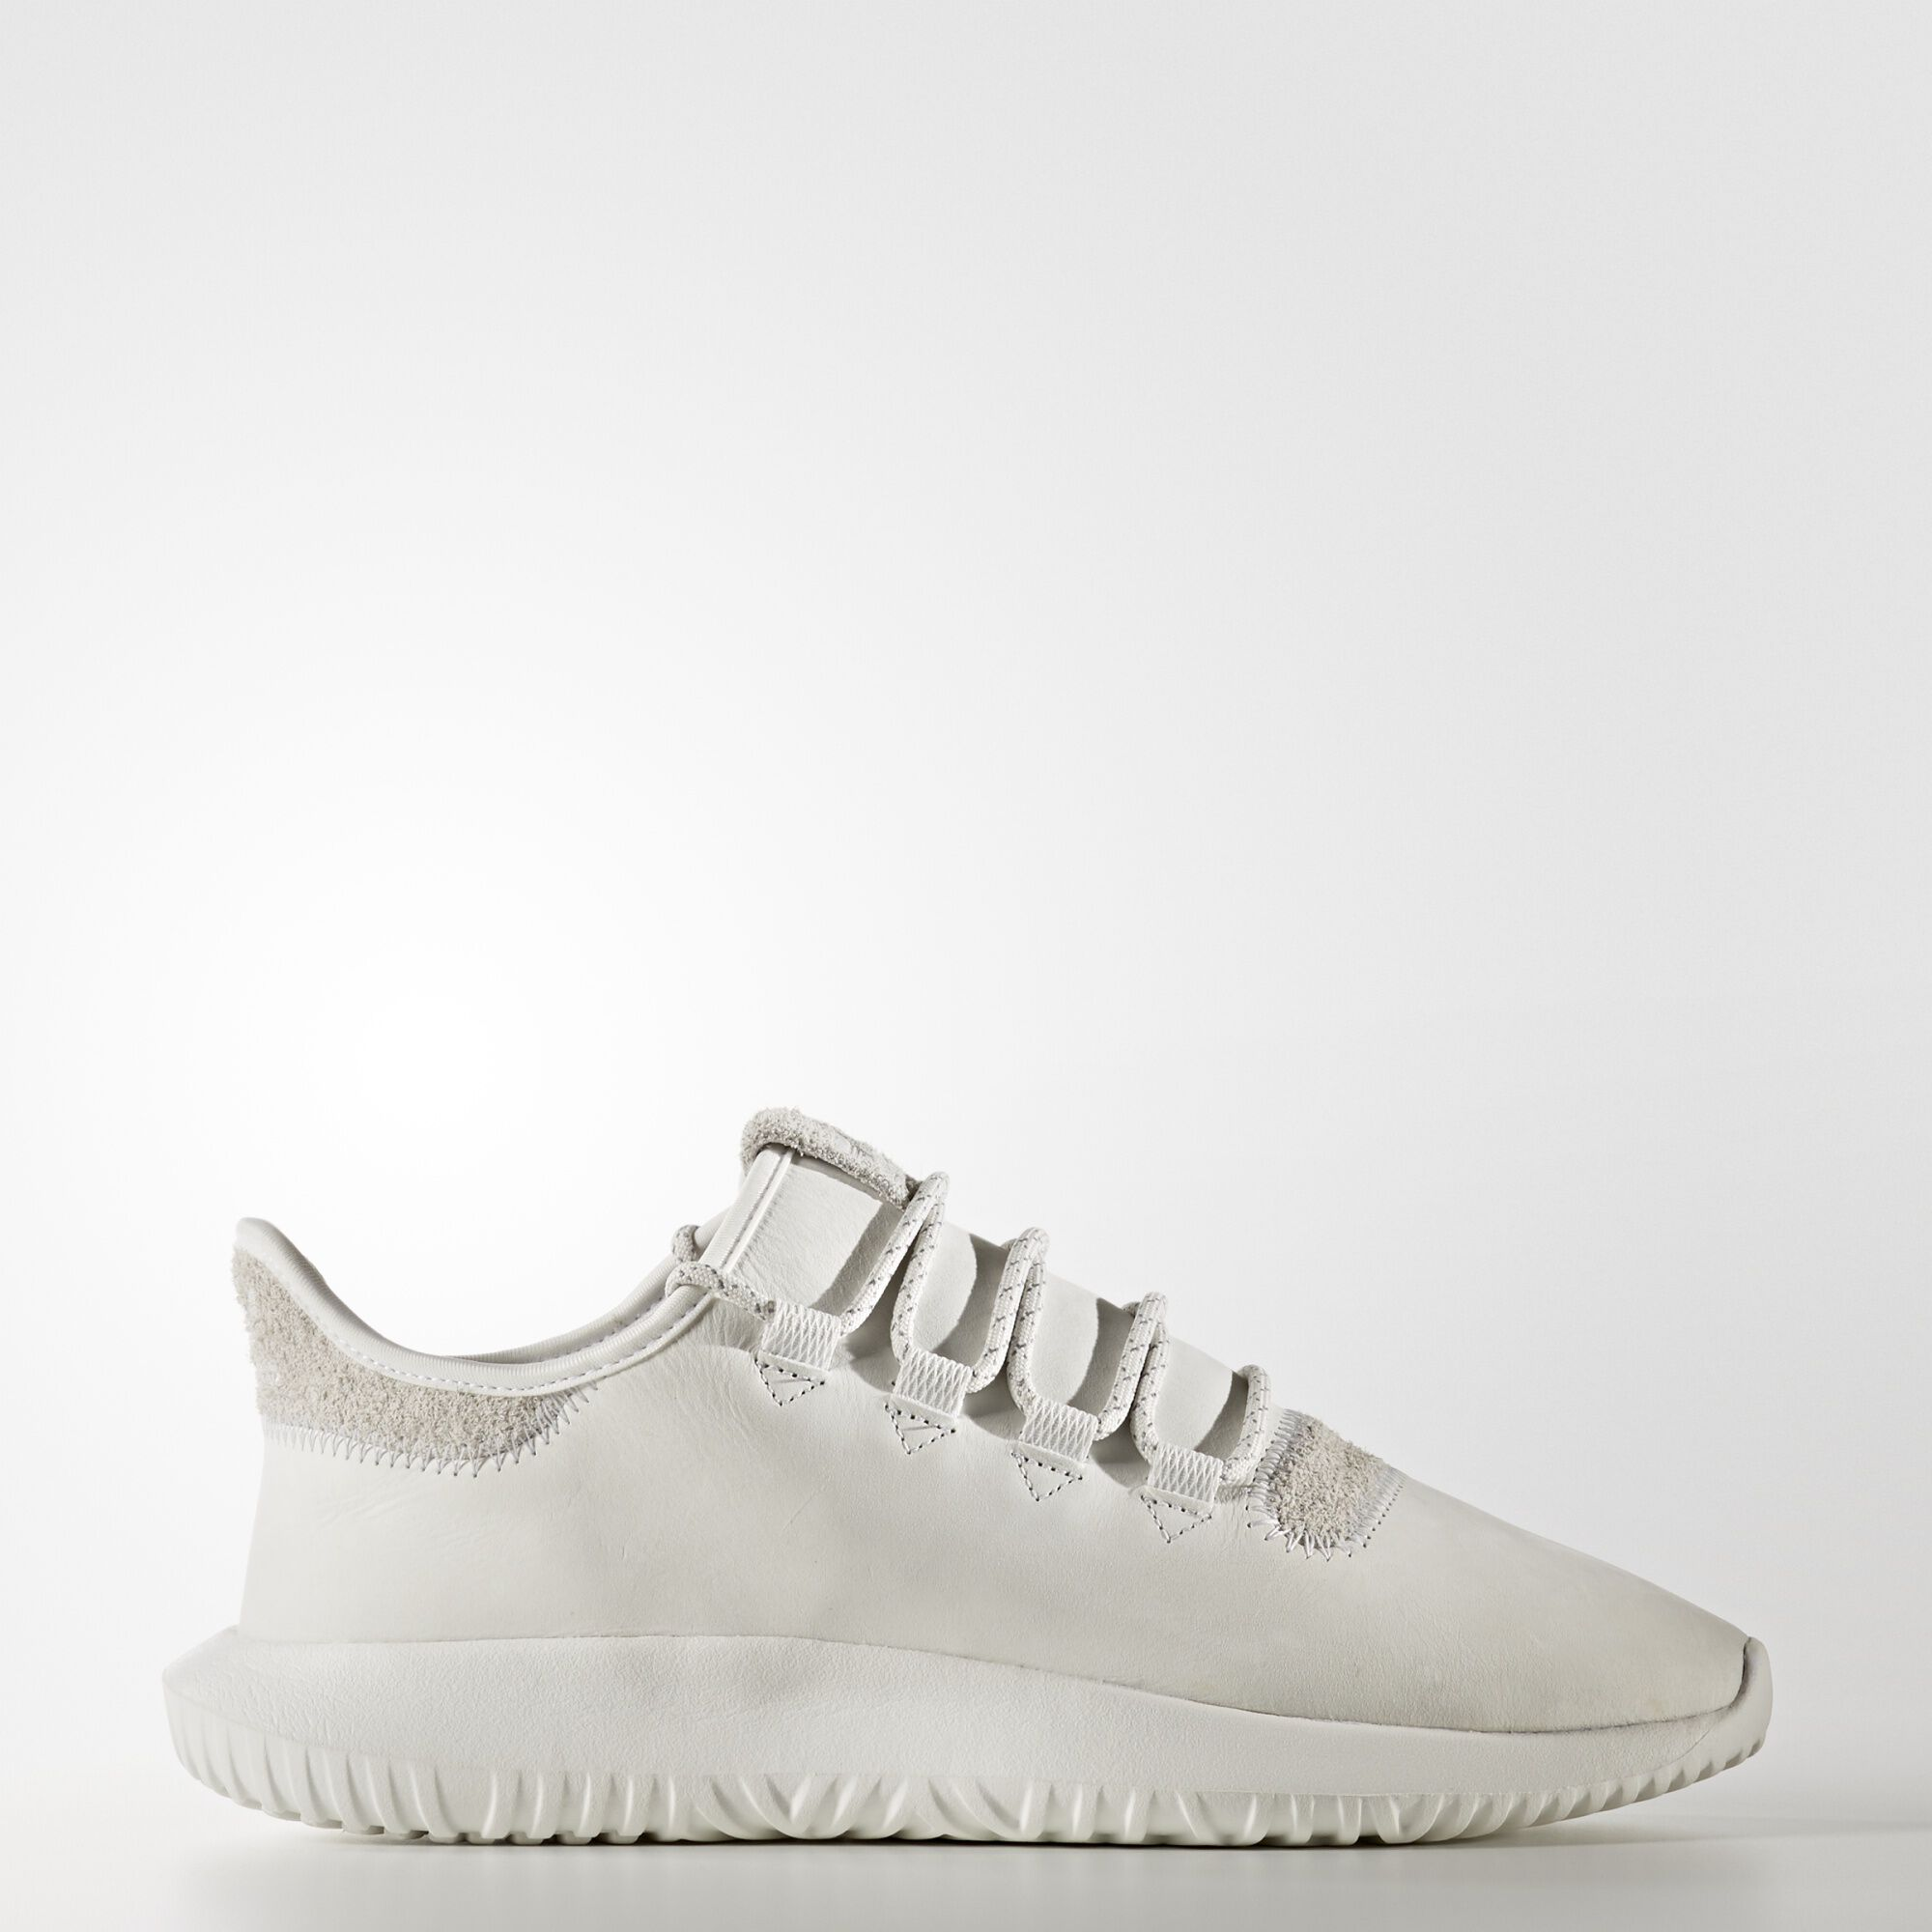 Adidas Tubular Radial Quilted Shoes